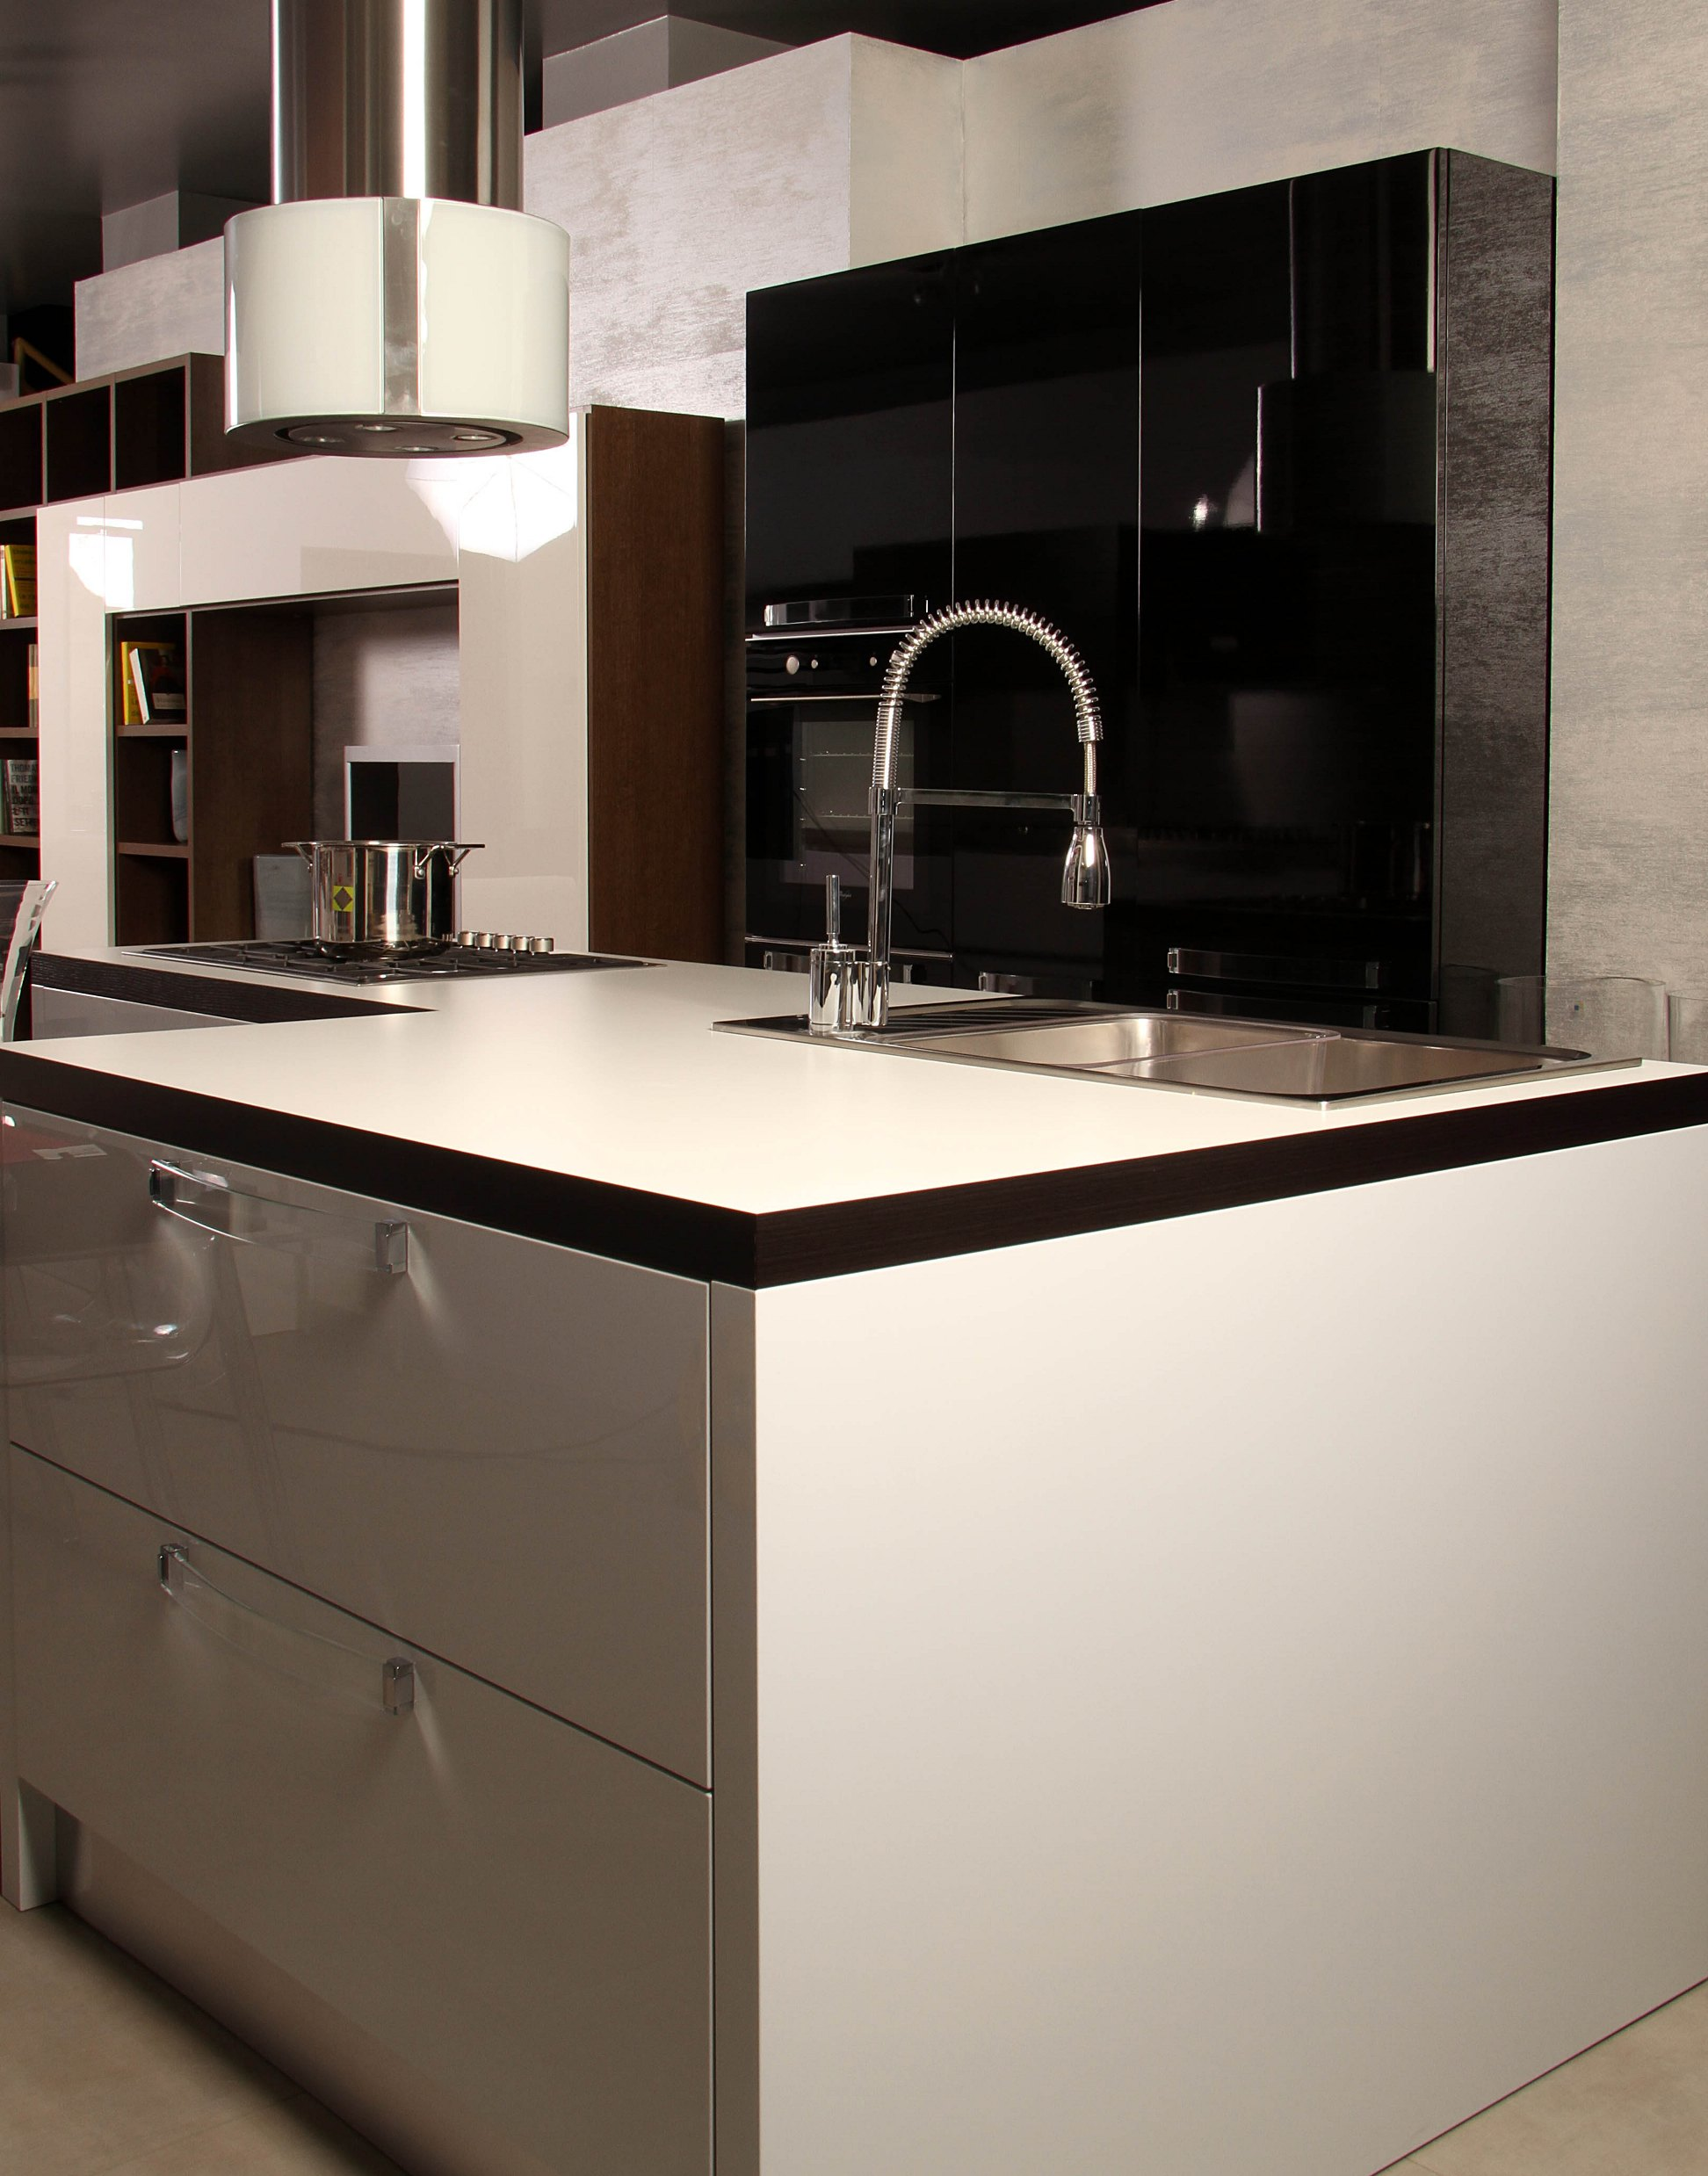 Cucine Scontate Veneta Cucine Carrera Pictures To Pin On Pinterest #A0792B 1944 2477 Gambe X Tavoli Ikea